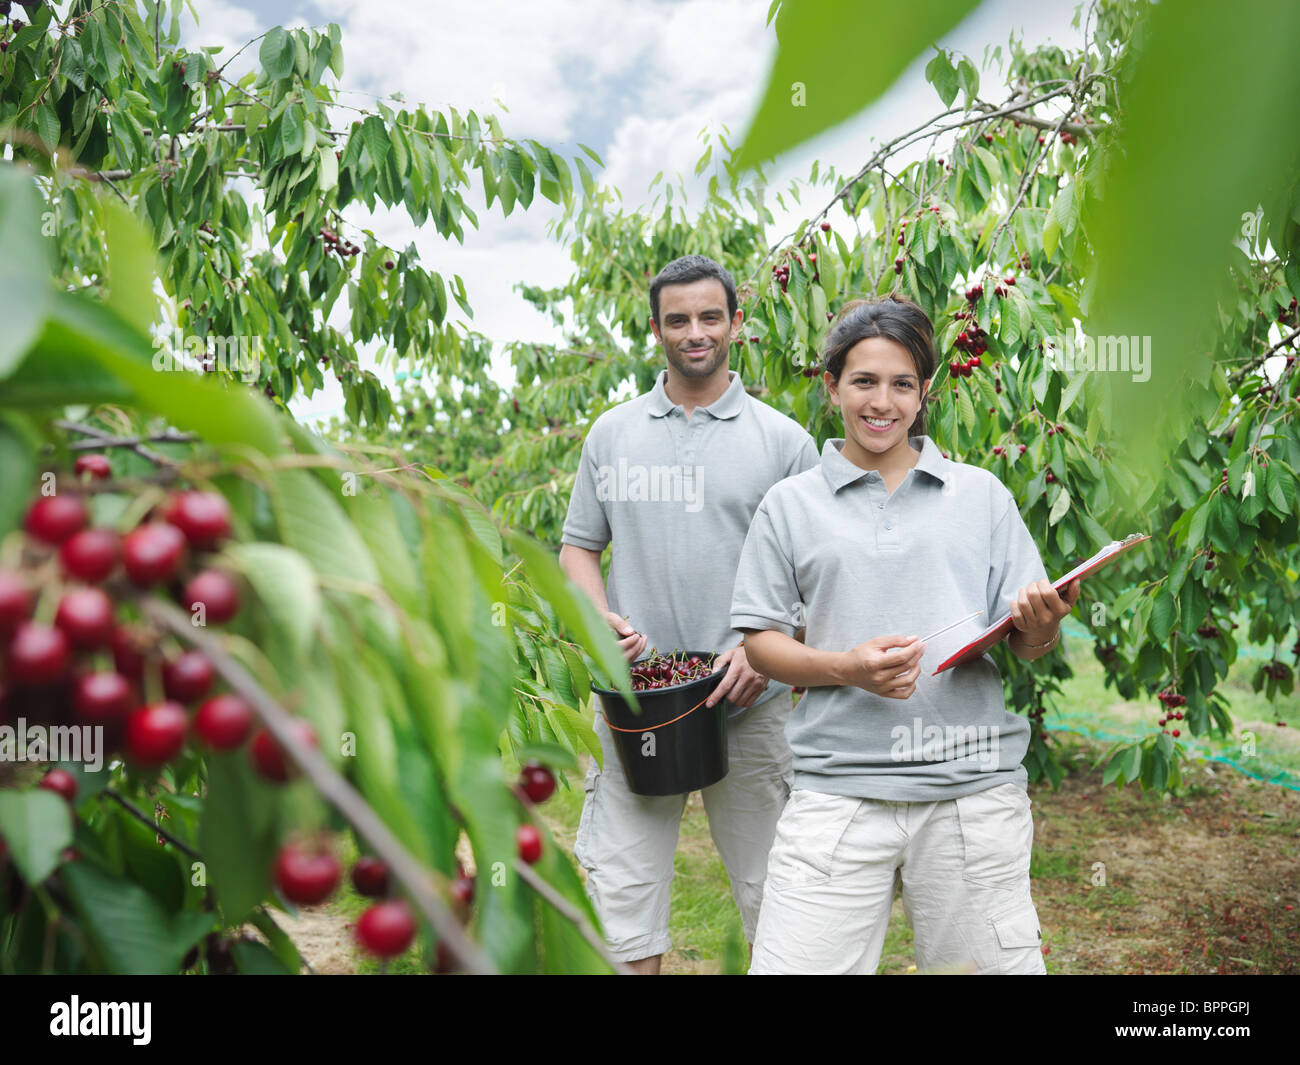 Man and woman posing in cherry orchard - Stock Image